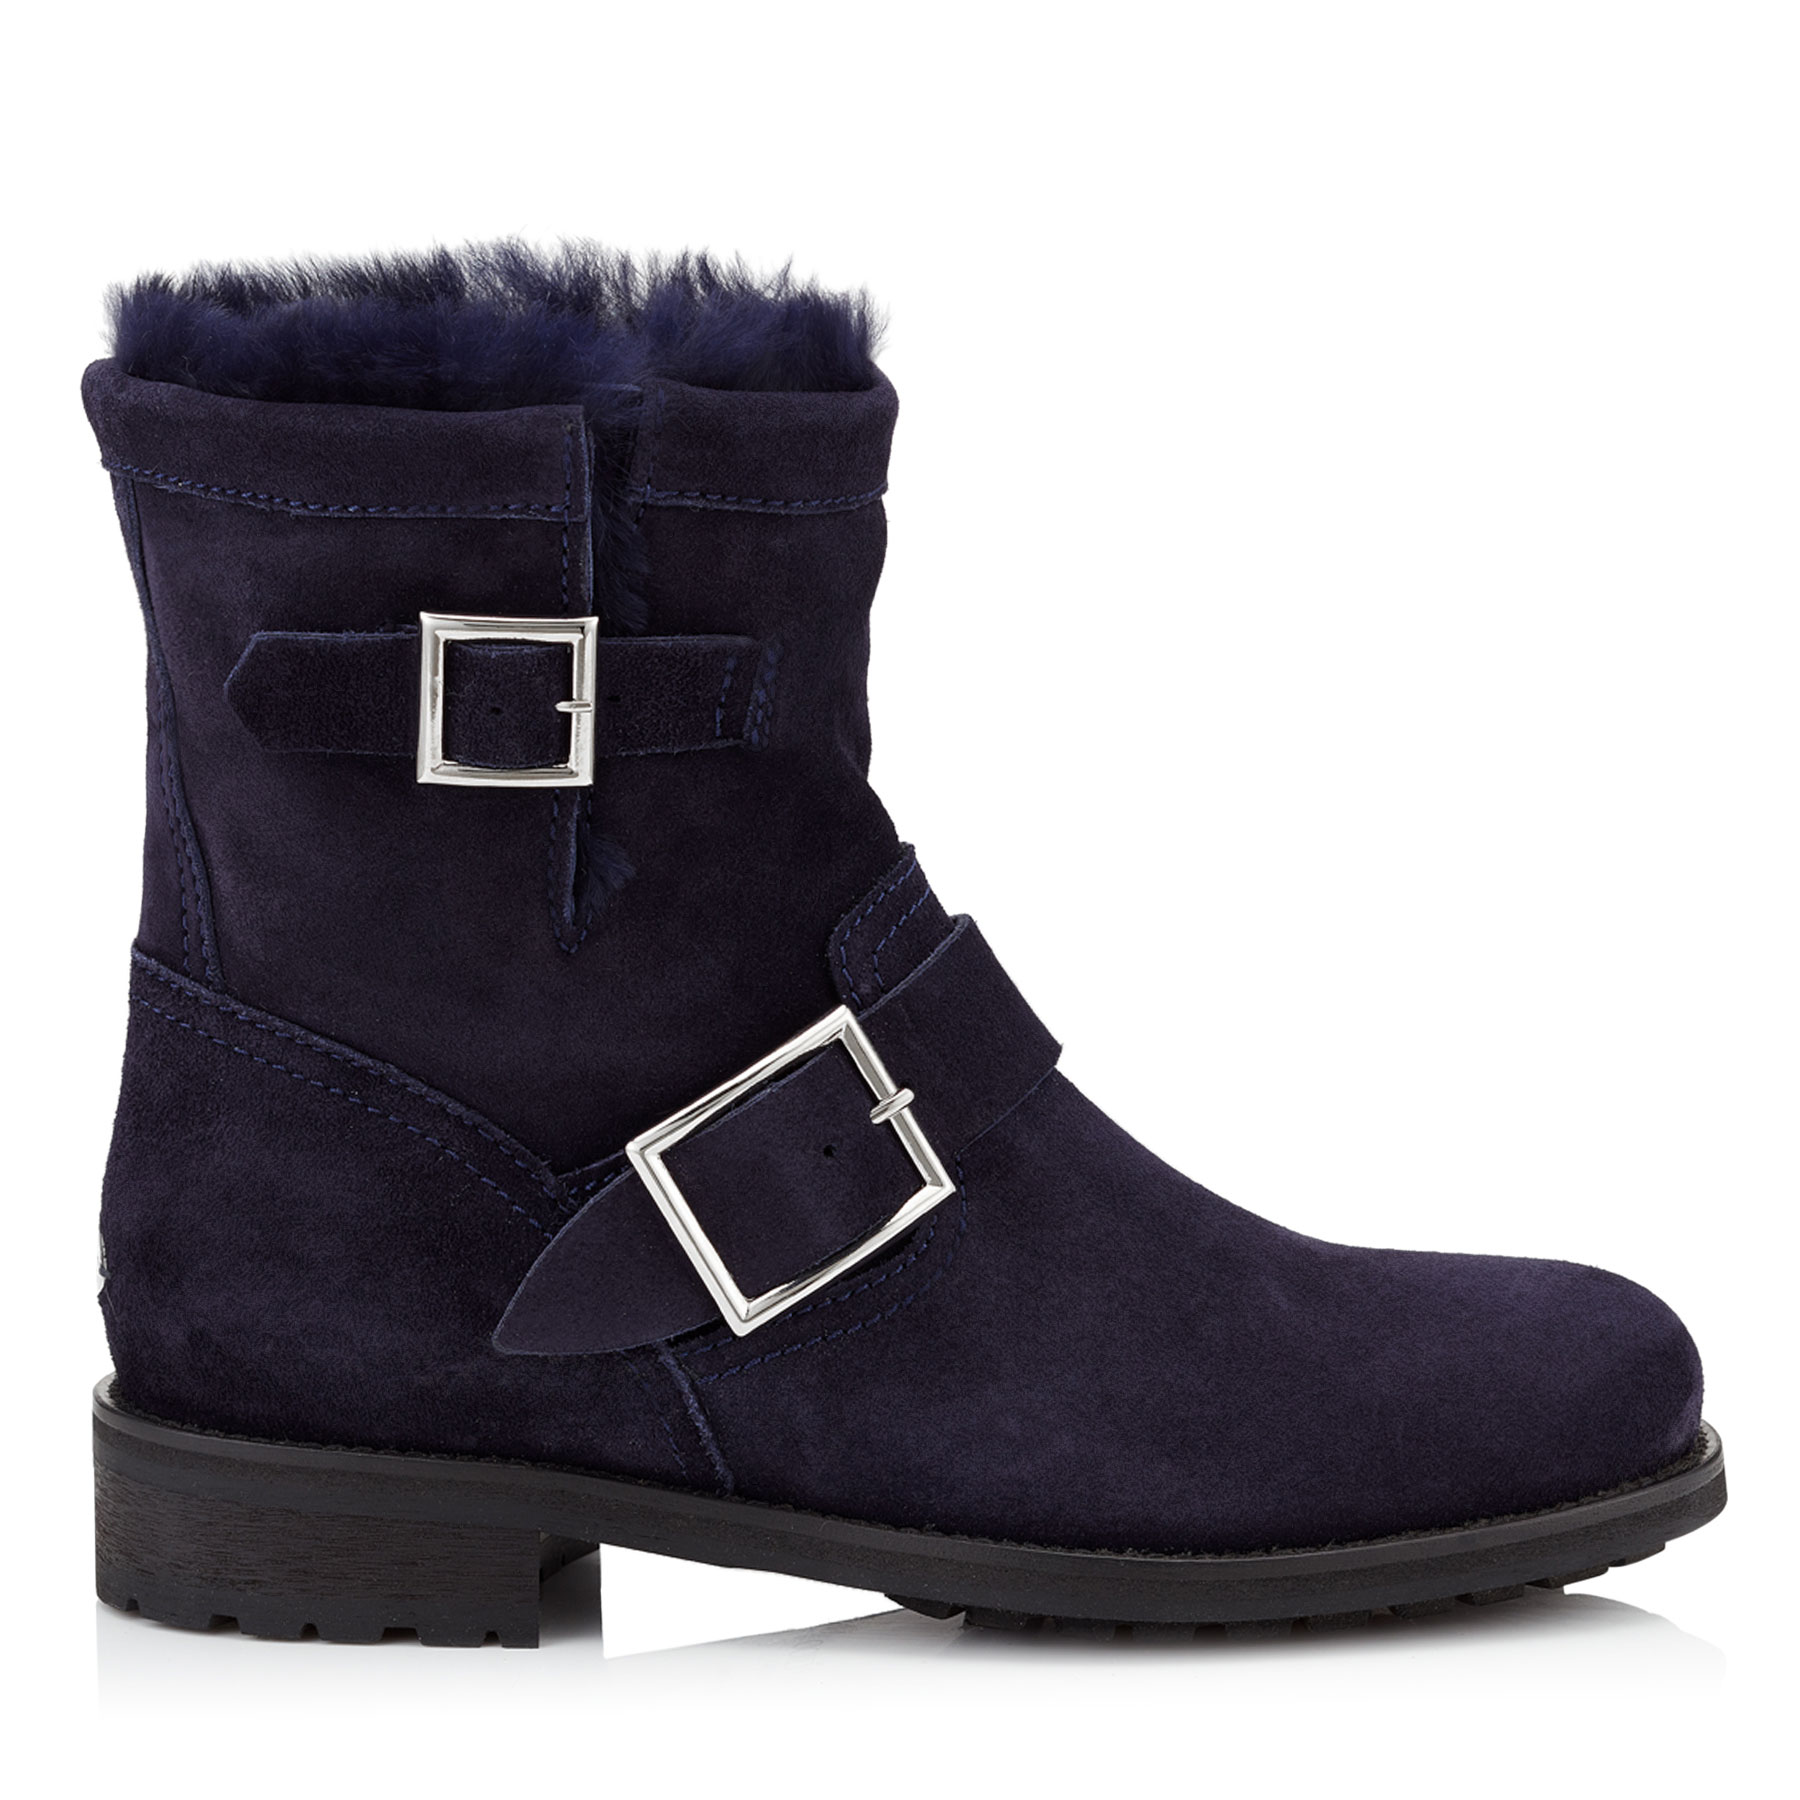 YOUTH Navy Suede Biker Boots with Rabbit Fur Lining by Jimmy Choo